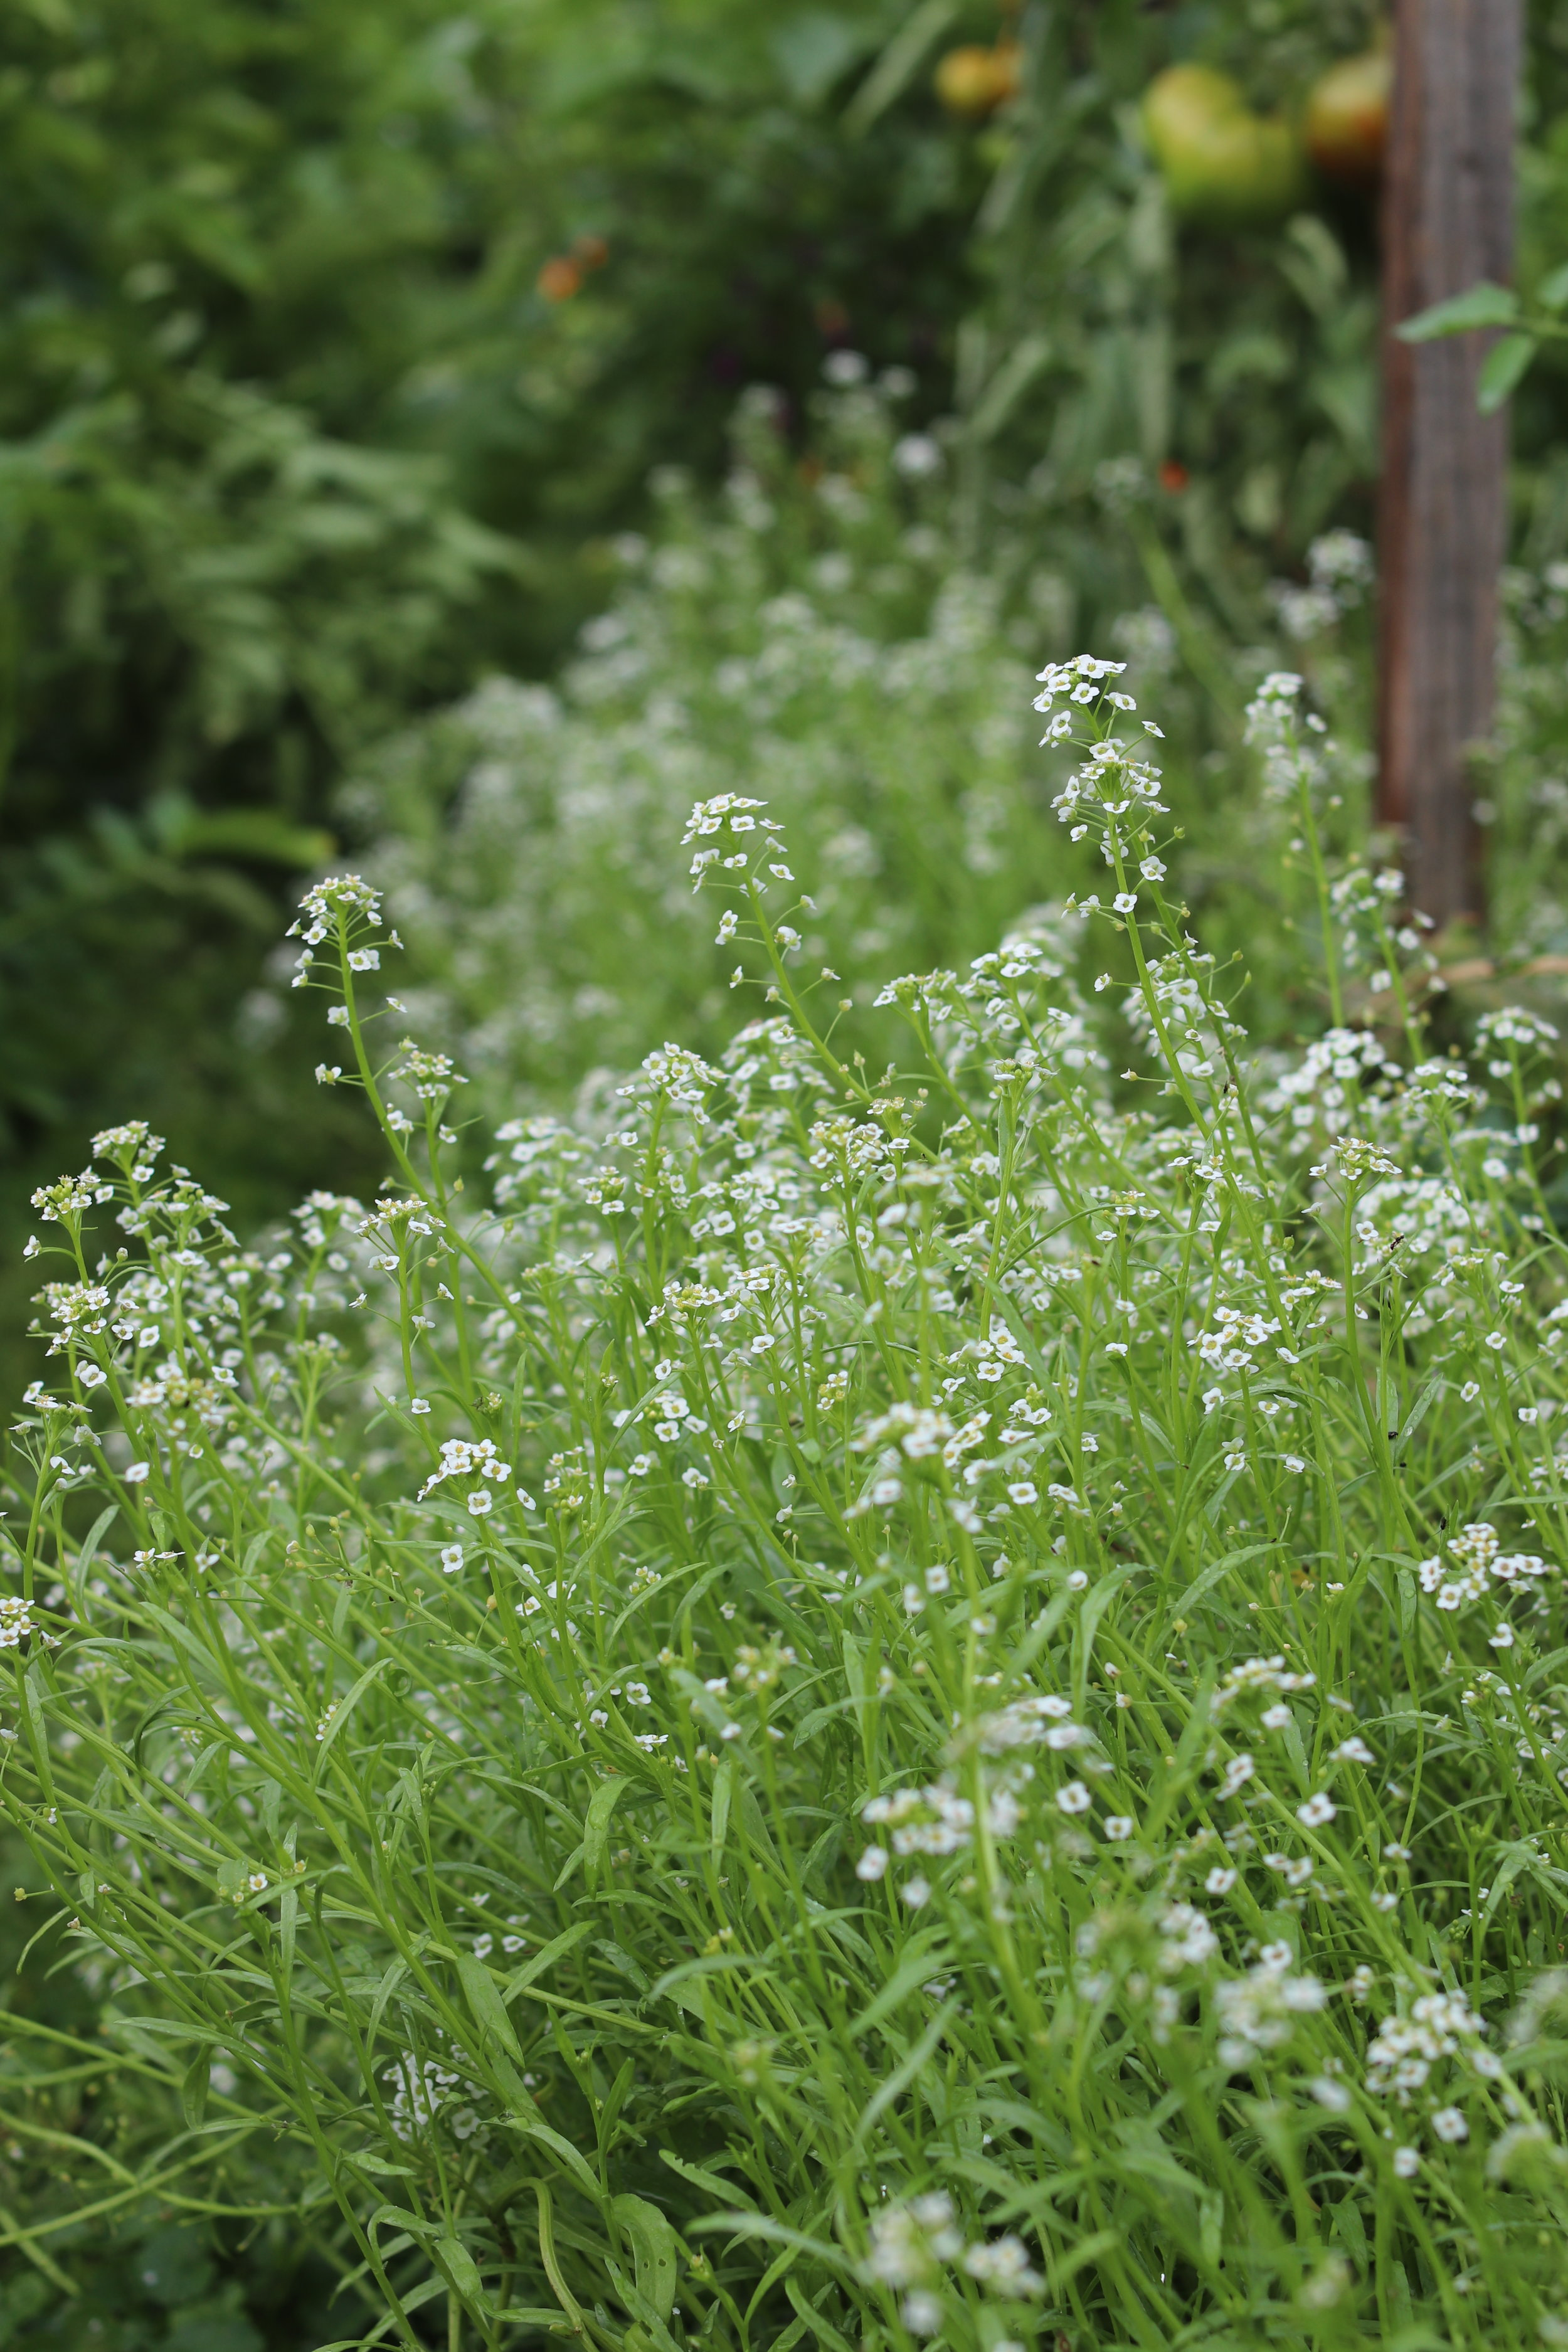 My favorite green mulch in the tomato bed is sweet alyssum.